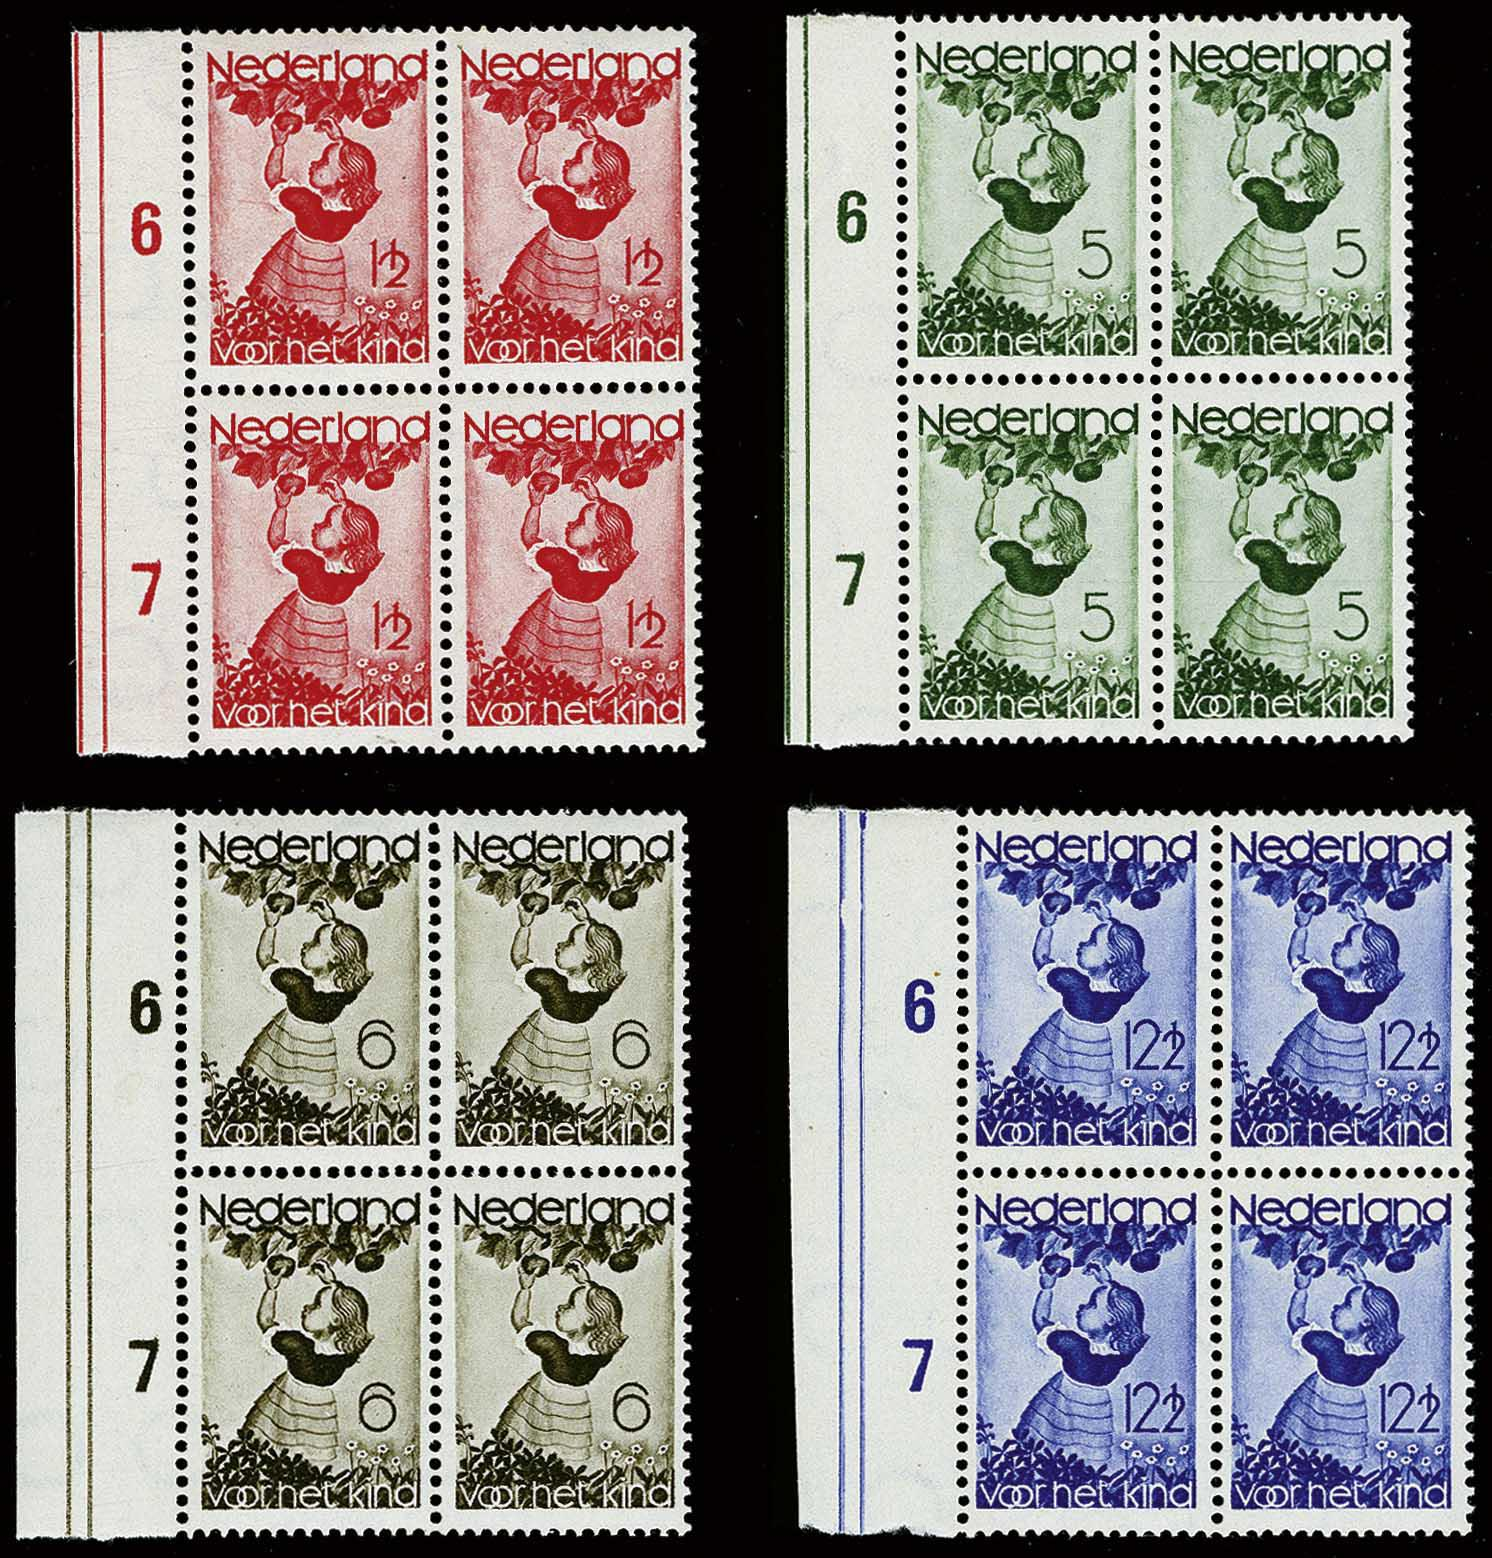 Lot 3586 - Netherlands and former colonies Netherlands -  Corinphila Veilingen Auction 244 -Netherlands and former colonies, WW2 Postal History, Bosnia, German and British colonies, Egypt. - Day 3